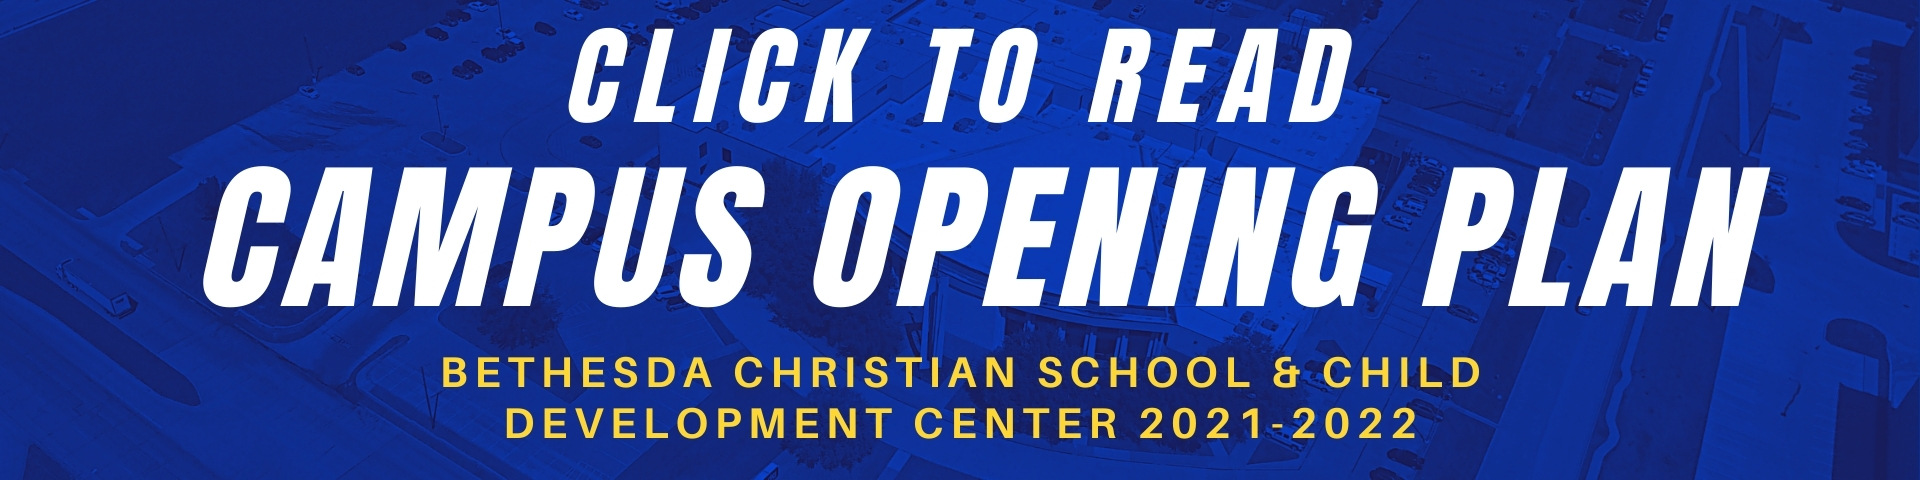 Click to read Campus Opening Plan